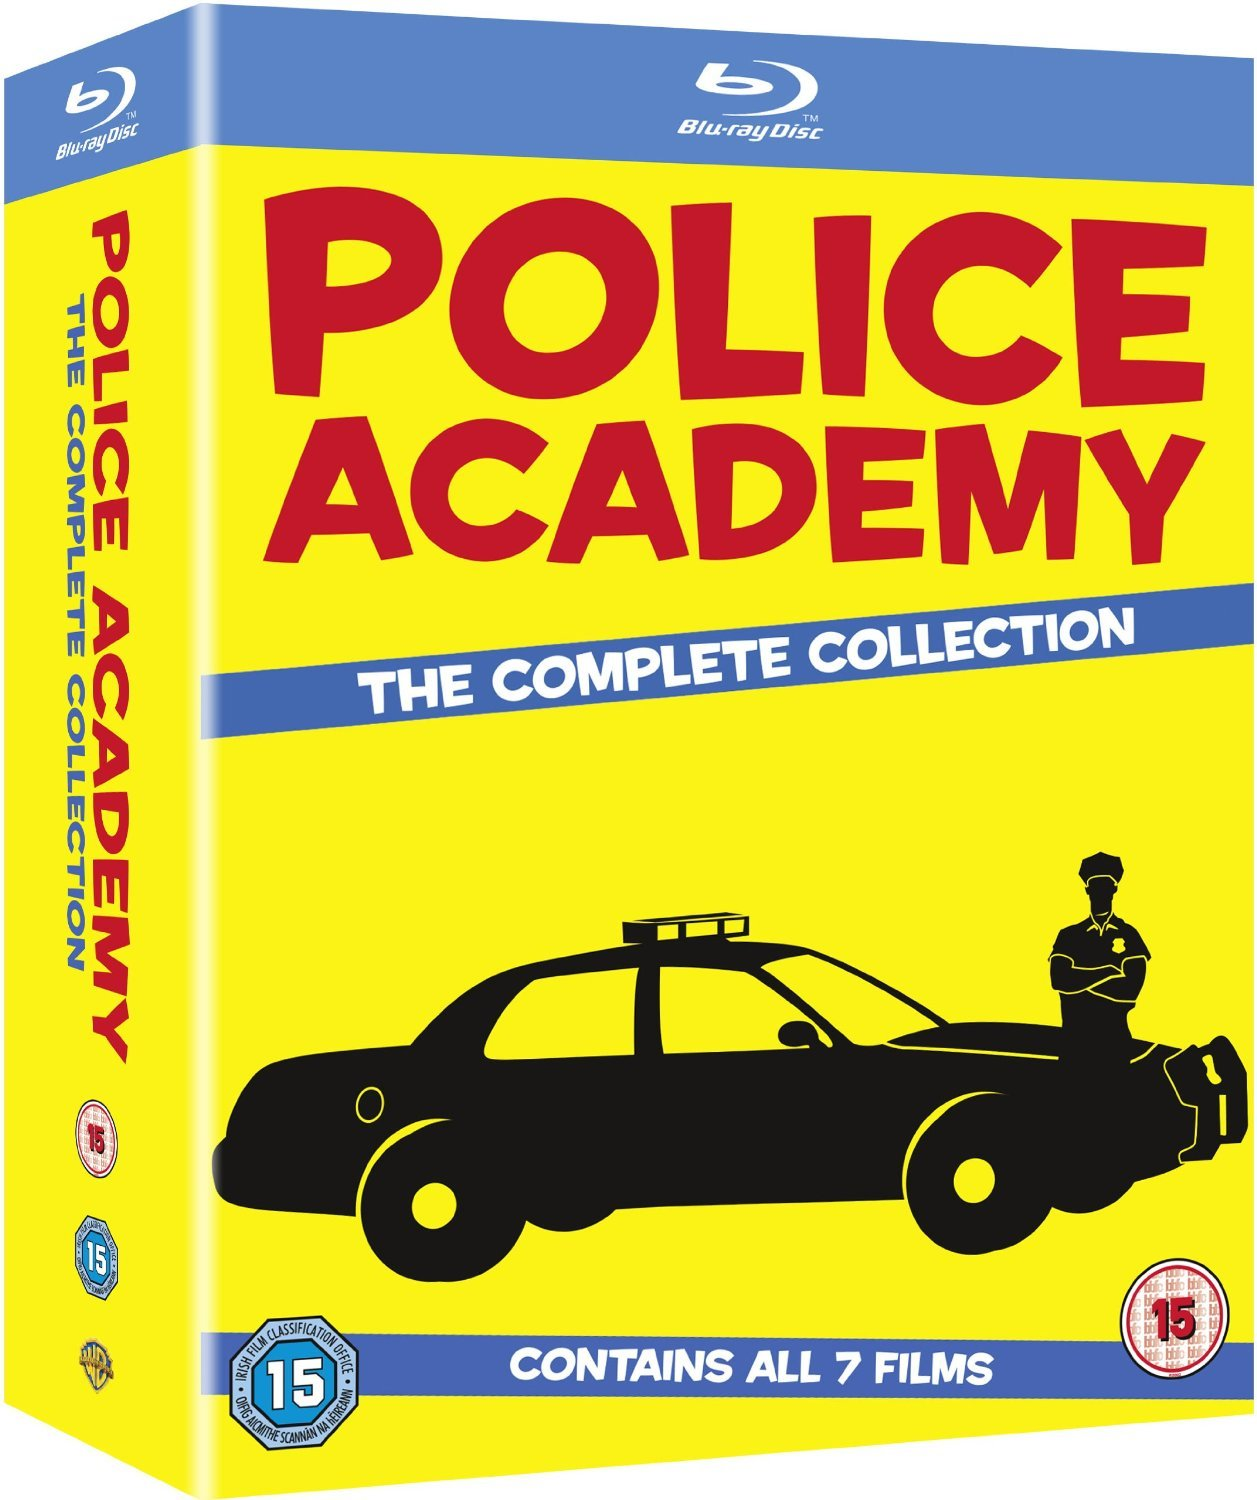 Police Academy 1-7 - The Set Complete Free Shipping Award New Collection Box Blu-ray